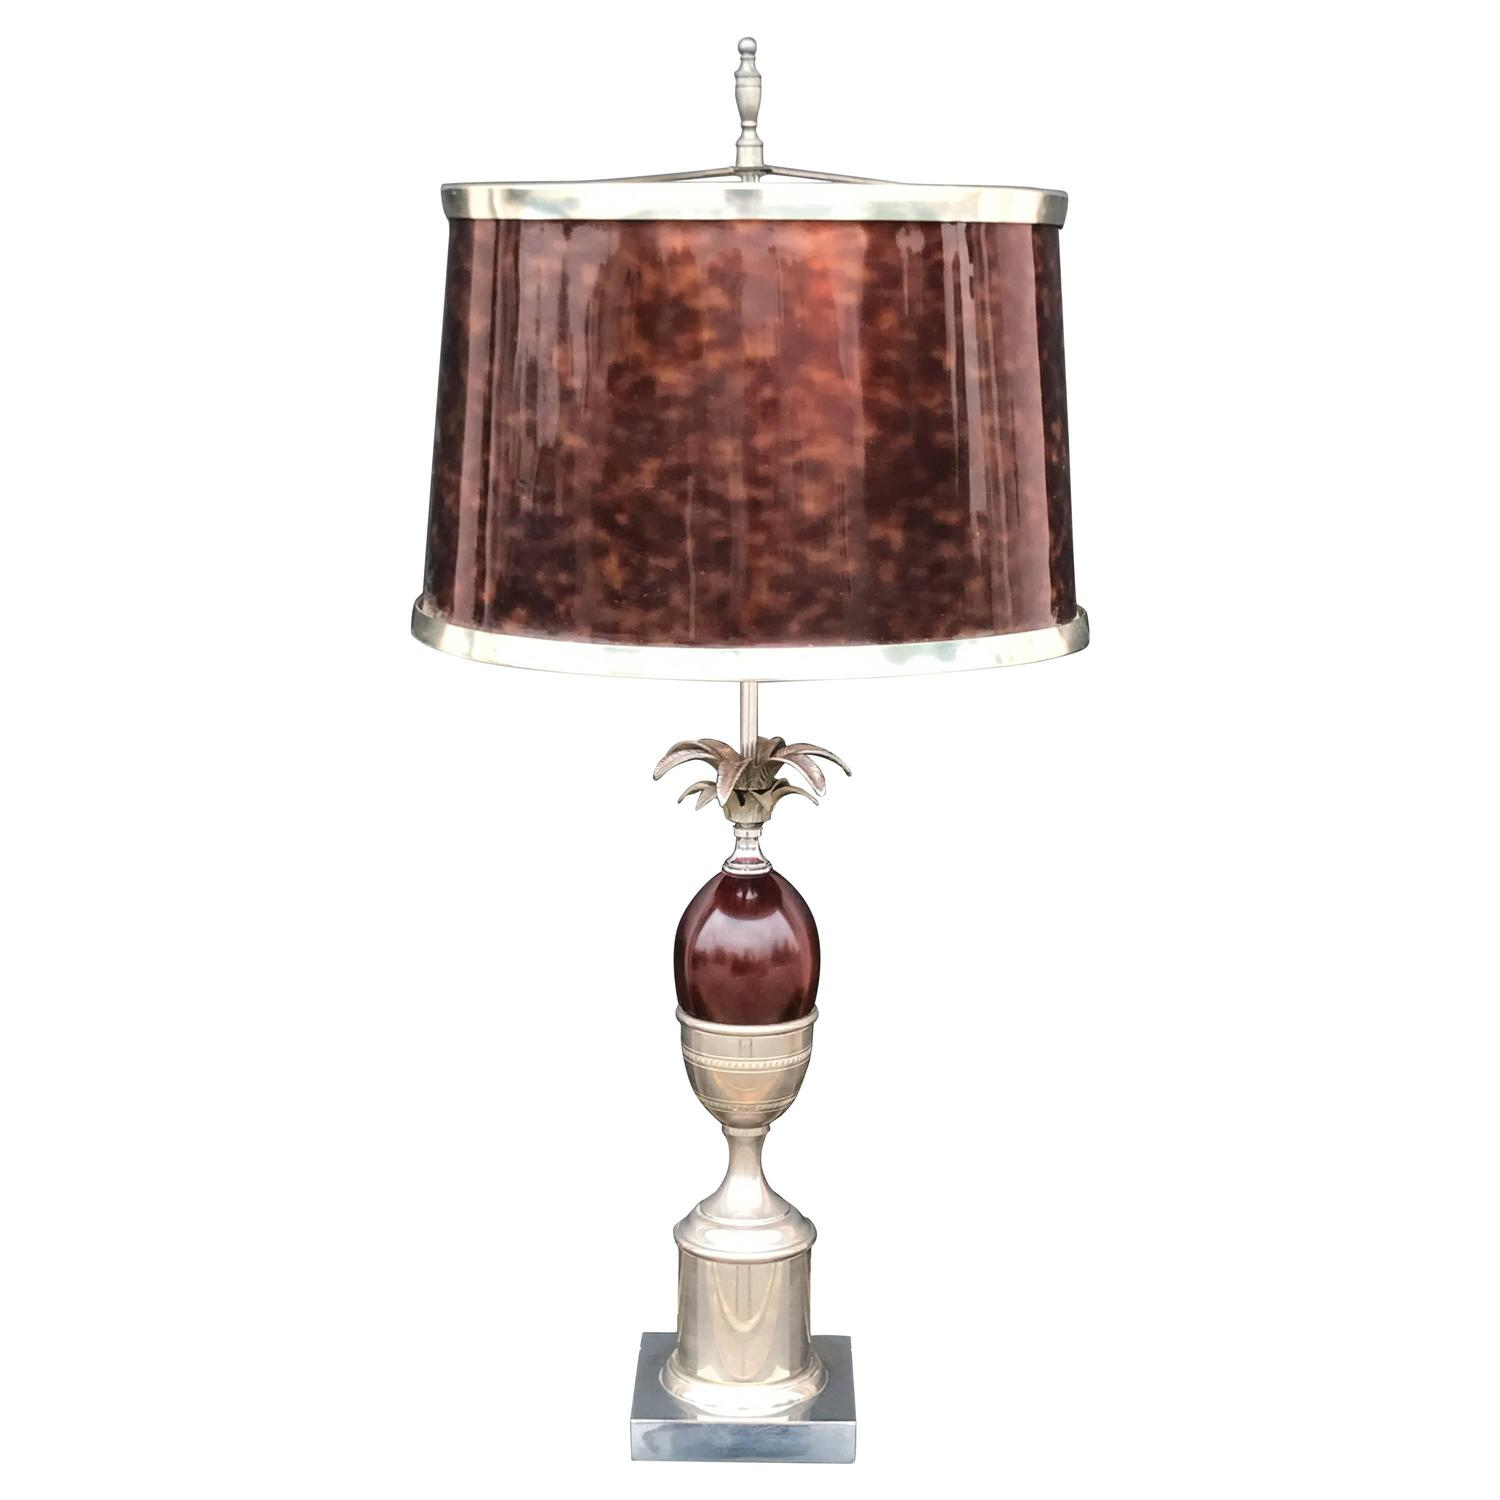 Super Tortoise Shell Lamps - 25 For Sale on 1stdibs ZB96